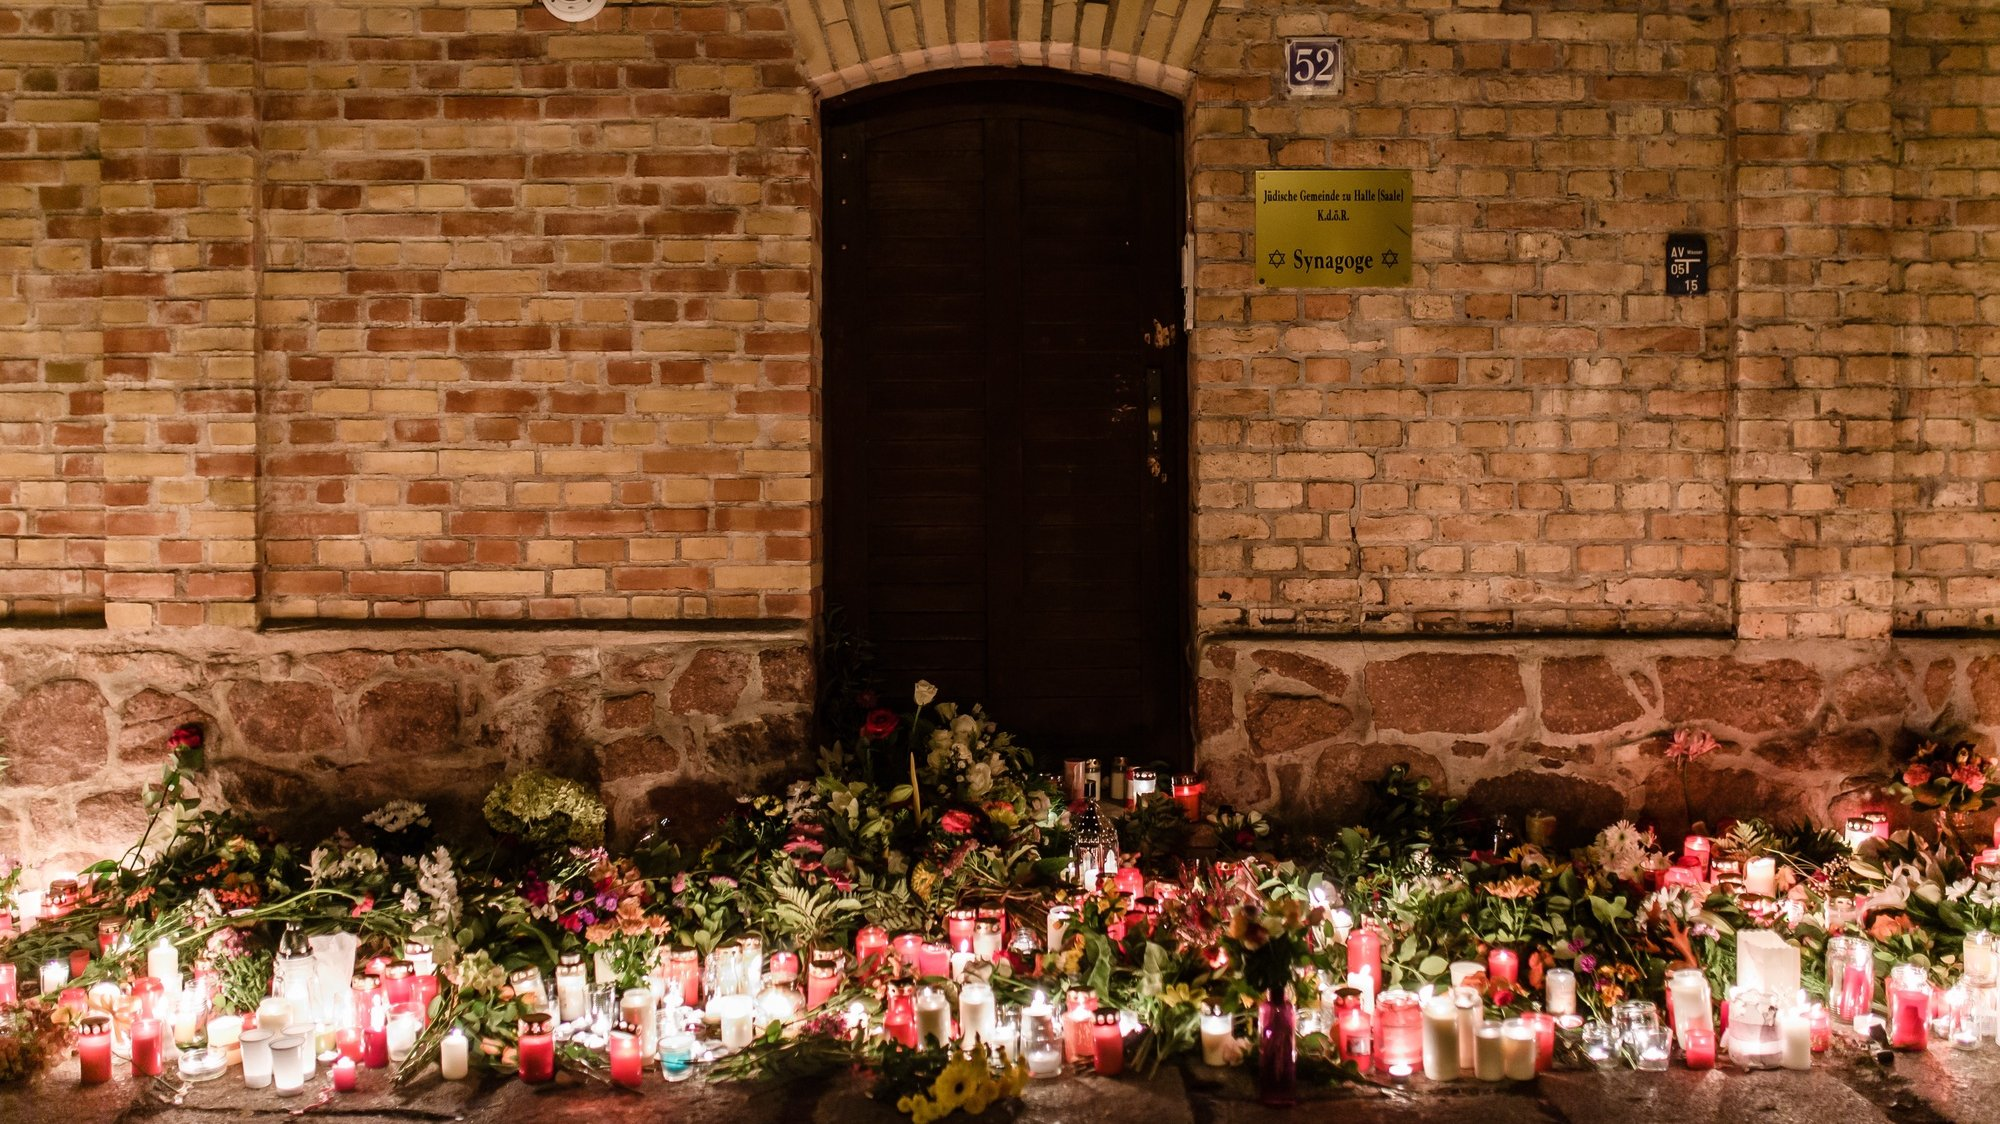 epa08891360 (FILE) - Candles and flowers are laid in front of the synagogue after an attack in which a man went on rampage shooting and tried to enter the Halle synagogue during celebrations of Yom Kippur, in Halle Saale, Germany, 10 October 2019 (reissued 18 December 2020). The trial of the Halle syangogue shooting is expected to end on 21 December.  EPA/CLEMENS BILAN *** Local Caption *** 55538431